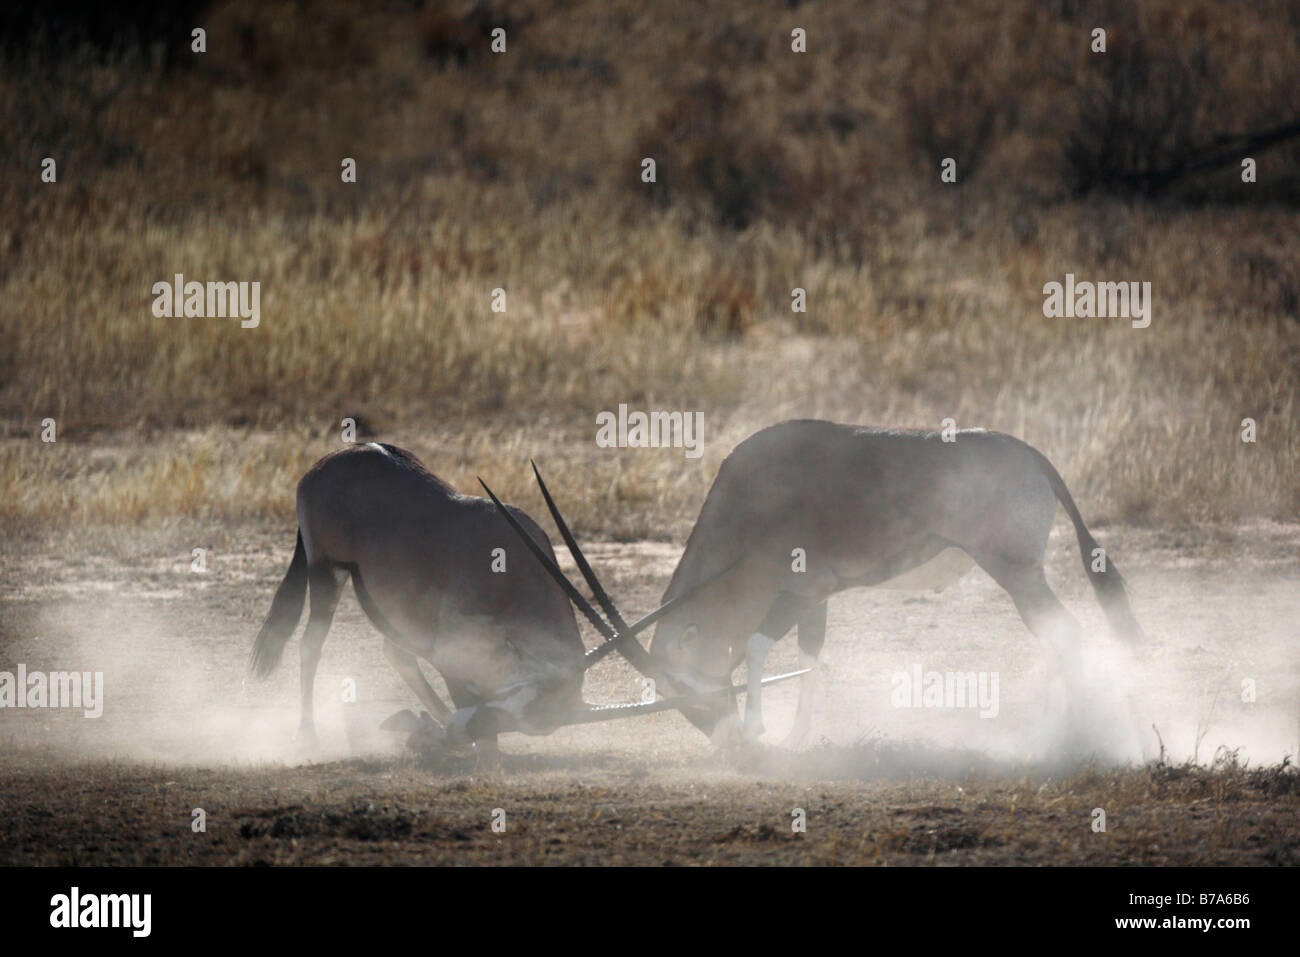 Two gemsbok (Oryx gazella) bulls fighting and kicking up dust - Stock Image